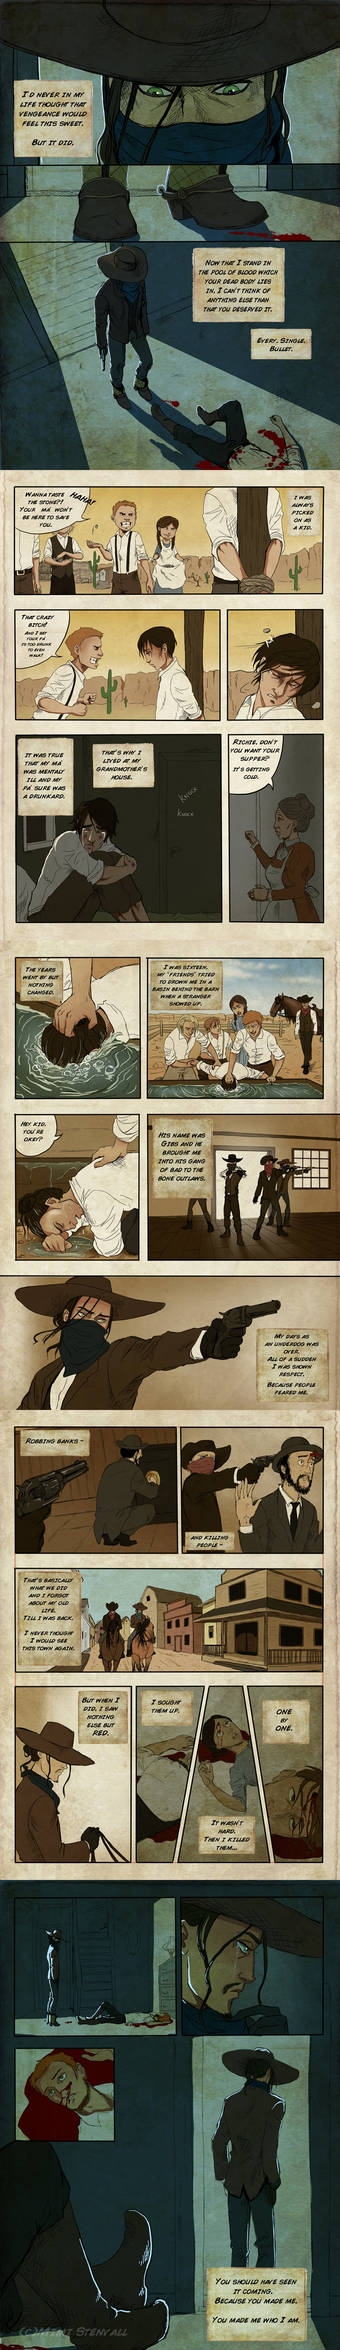 An outlaws tale